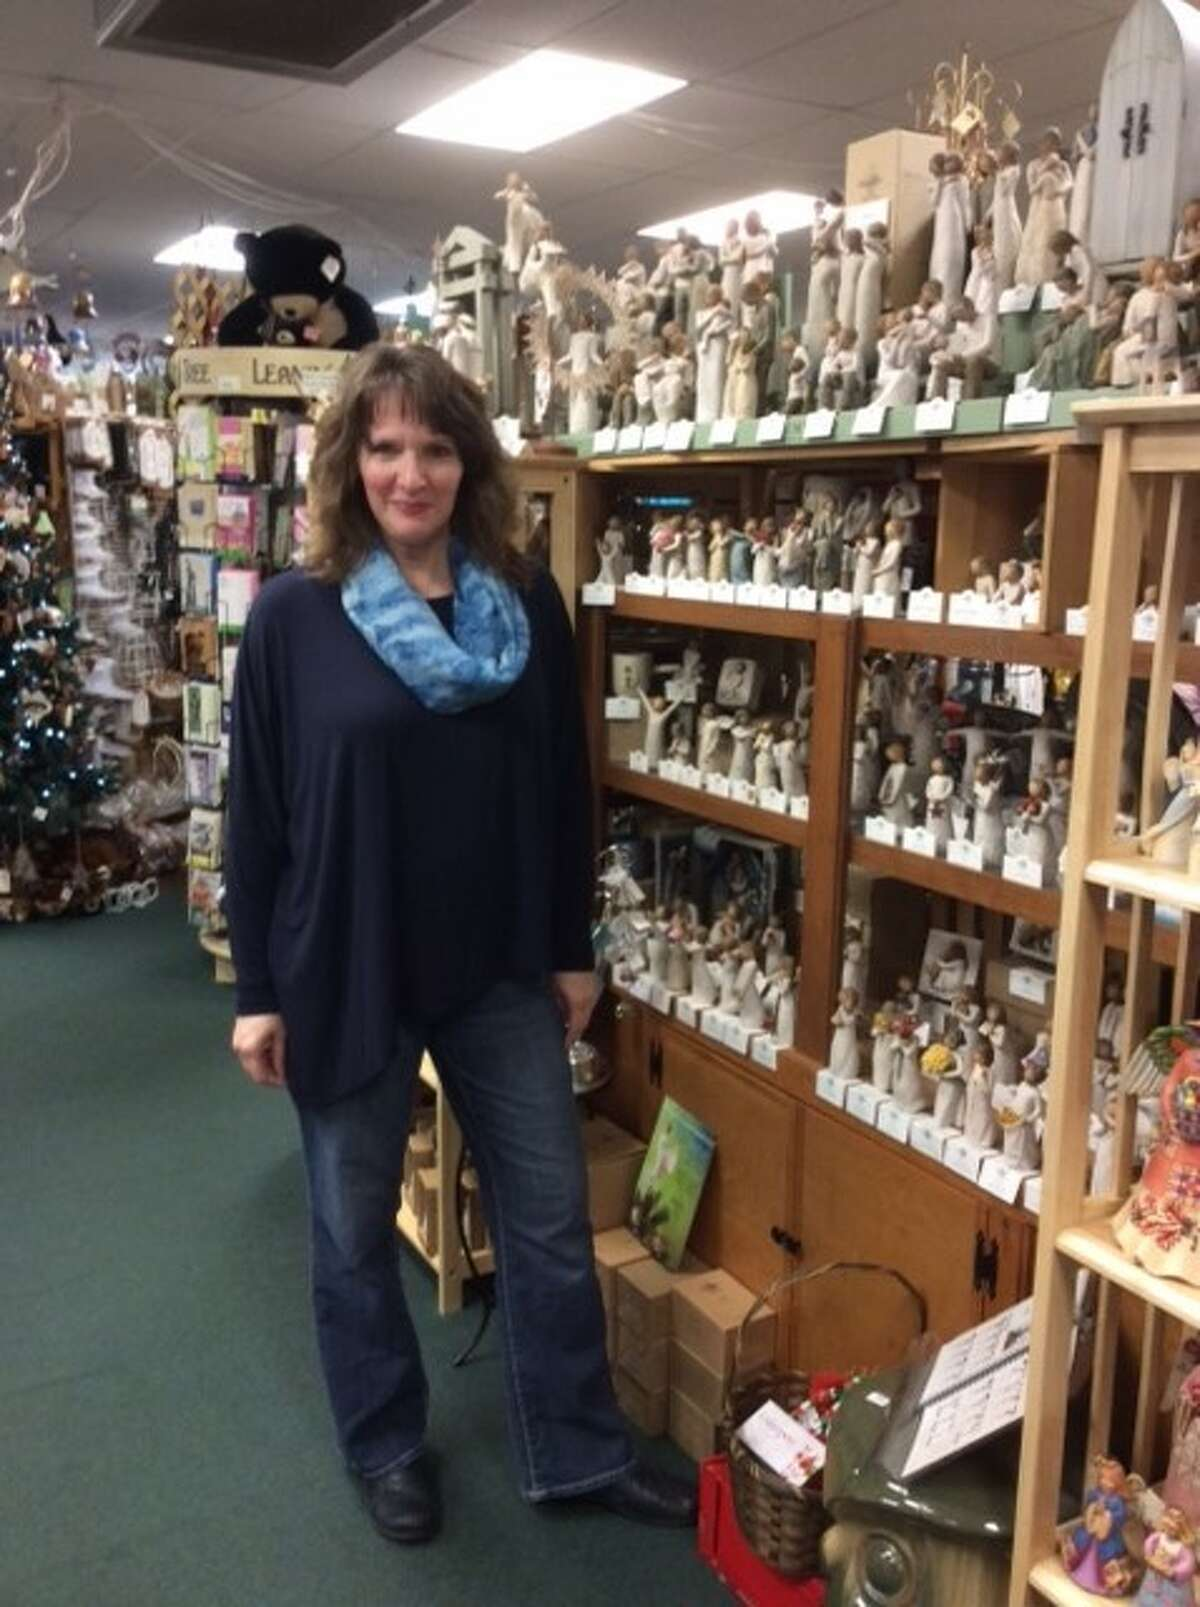 Patricia Varga, owner of the Cross Eyed Owl Gift Shop was recently awarded the 2016